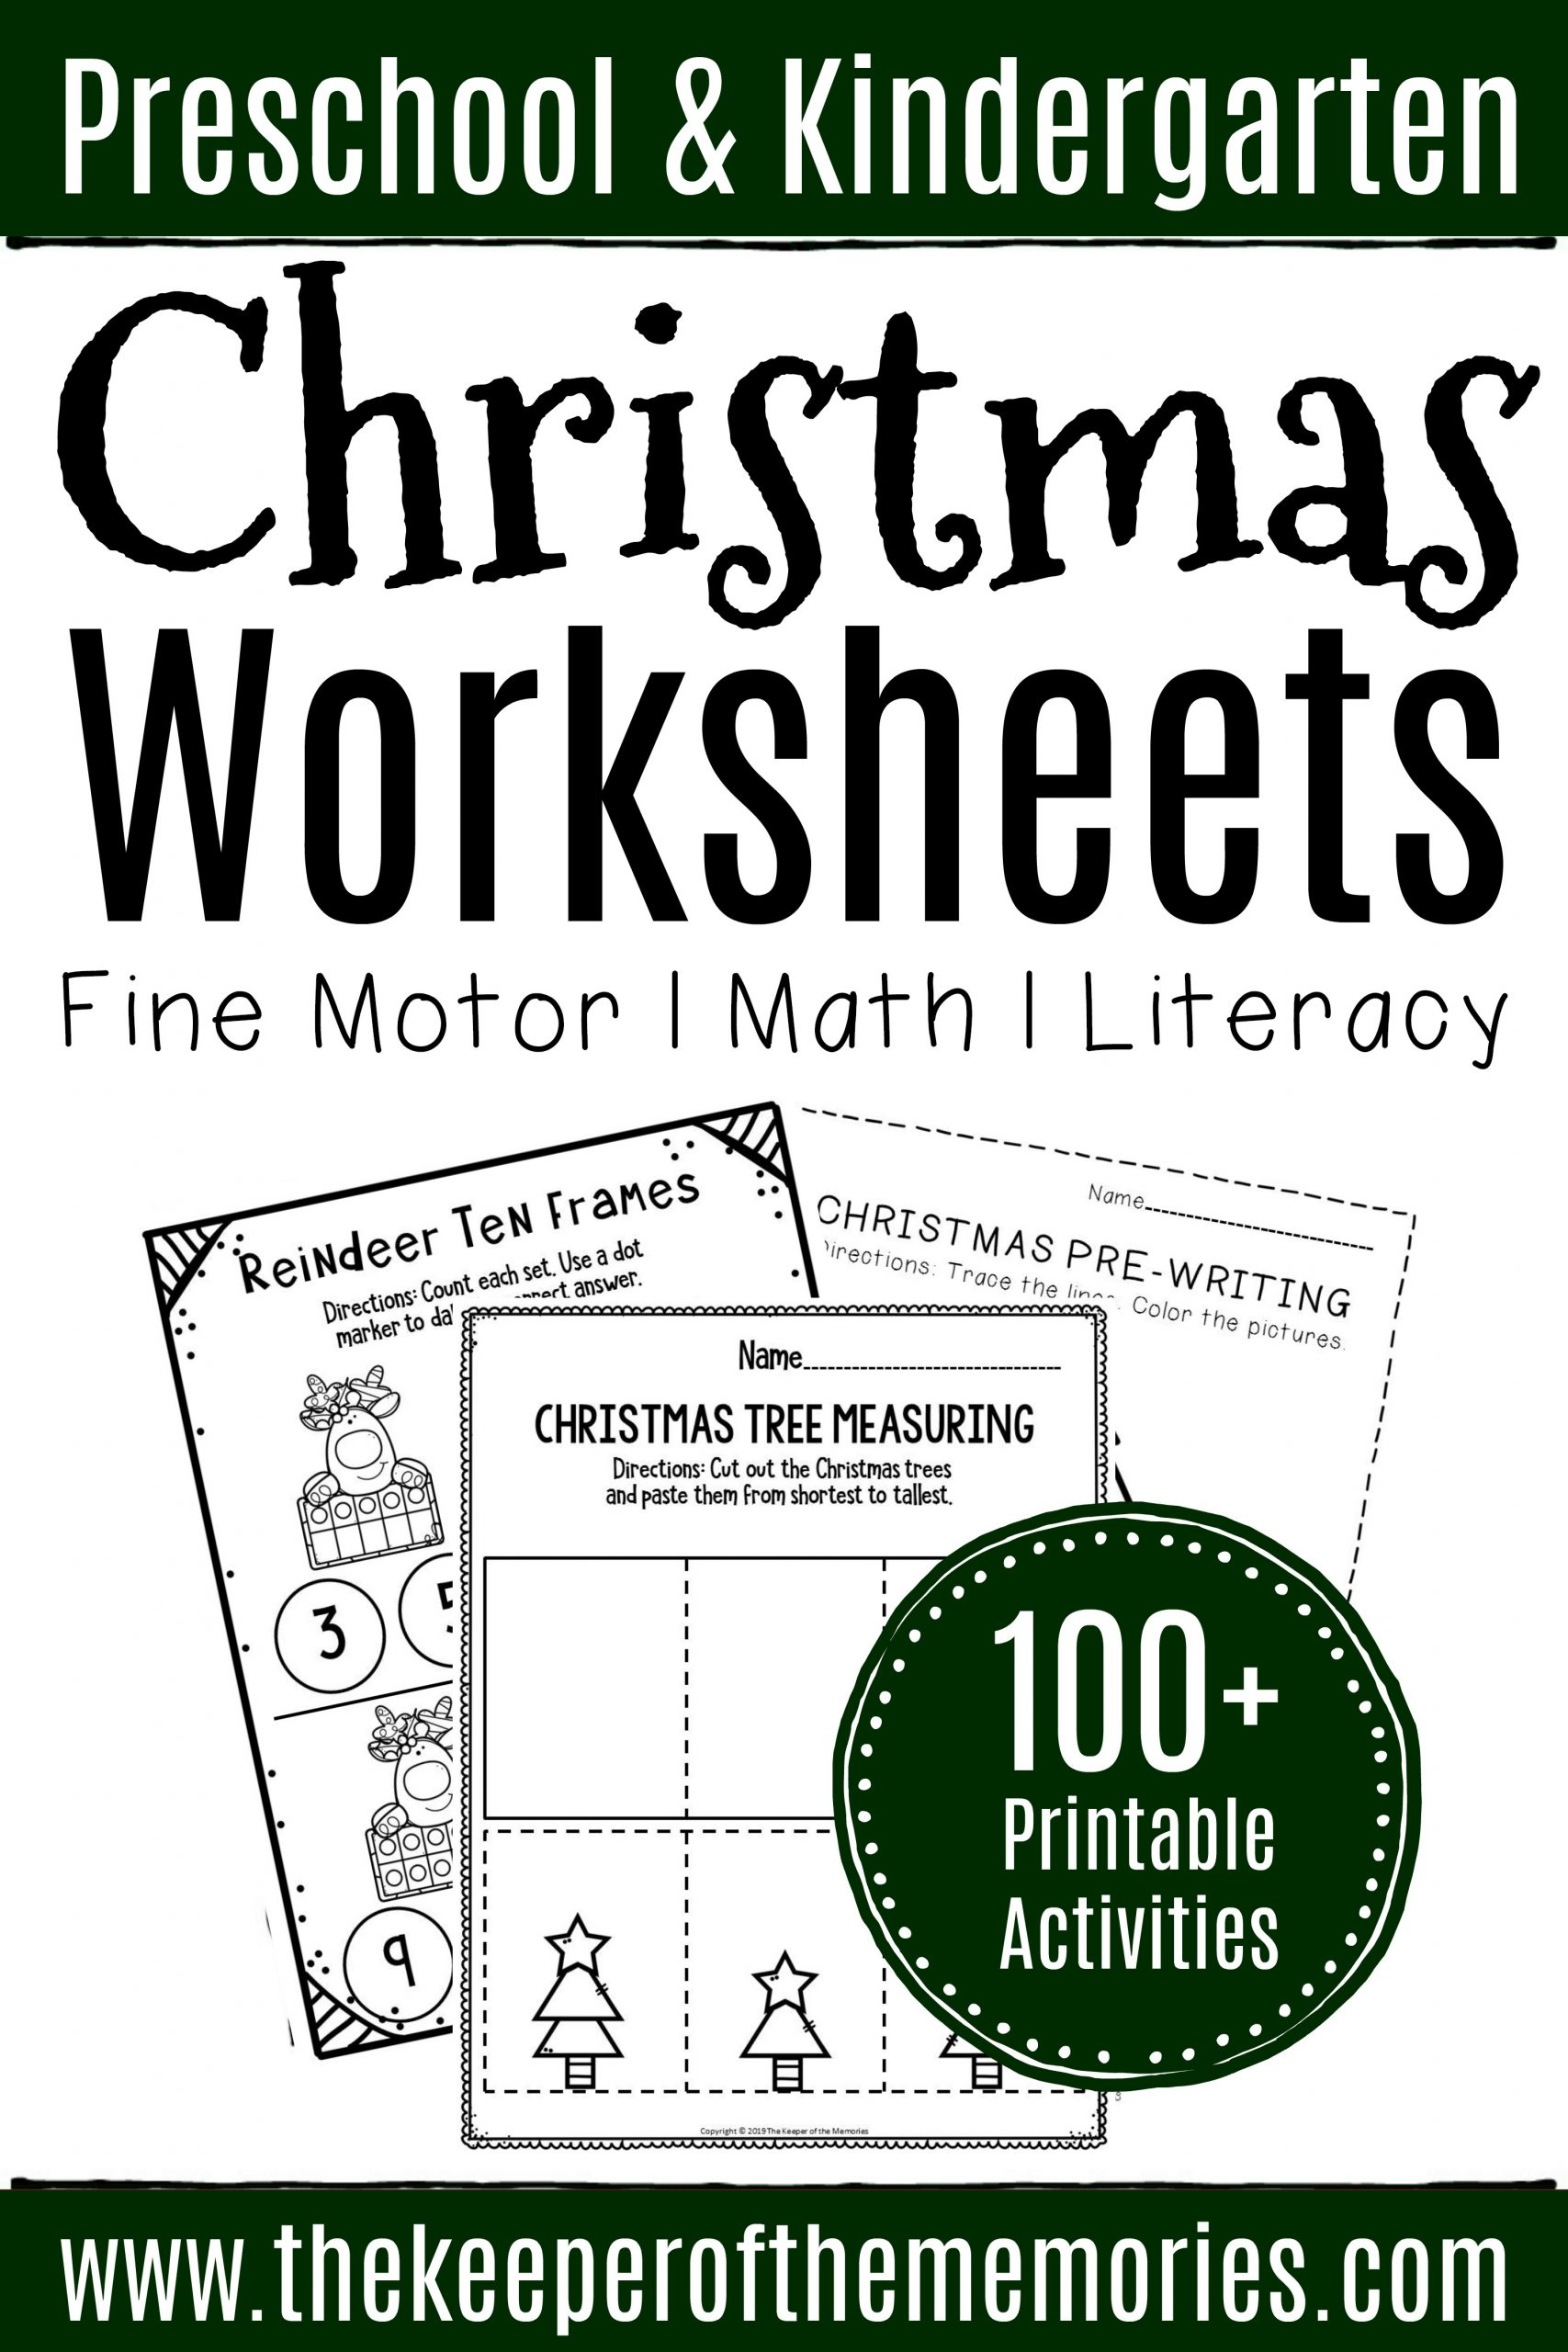 Preschool Christmas Worksheet Printables 100 Christmas Worksheets for Preschoolers & Kindergartners